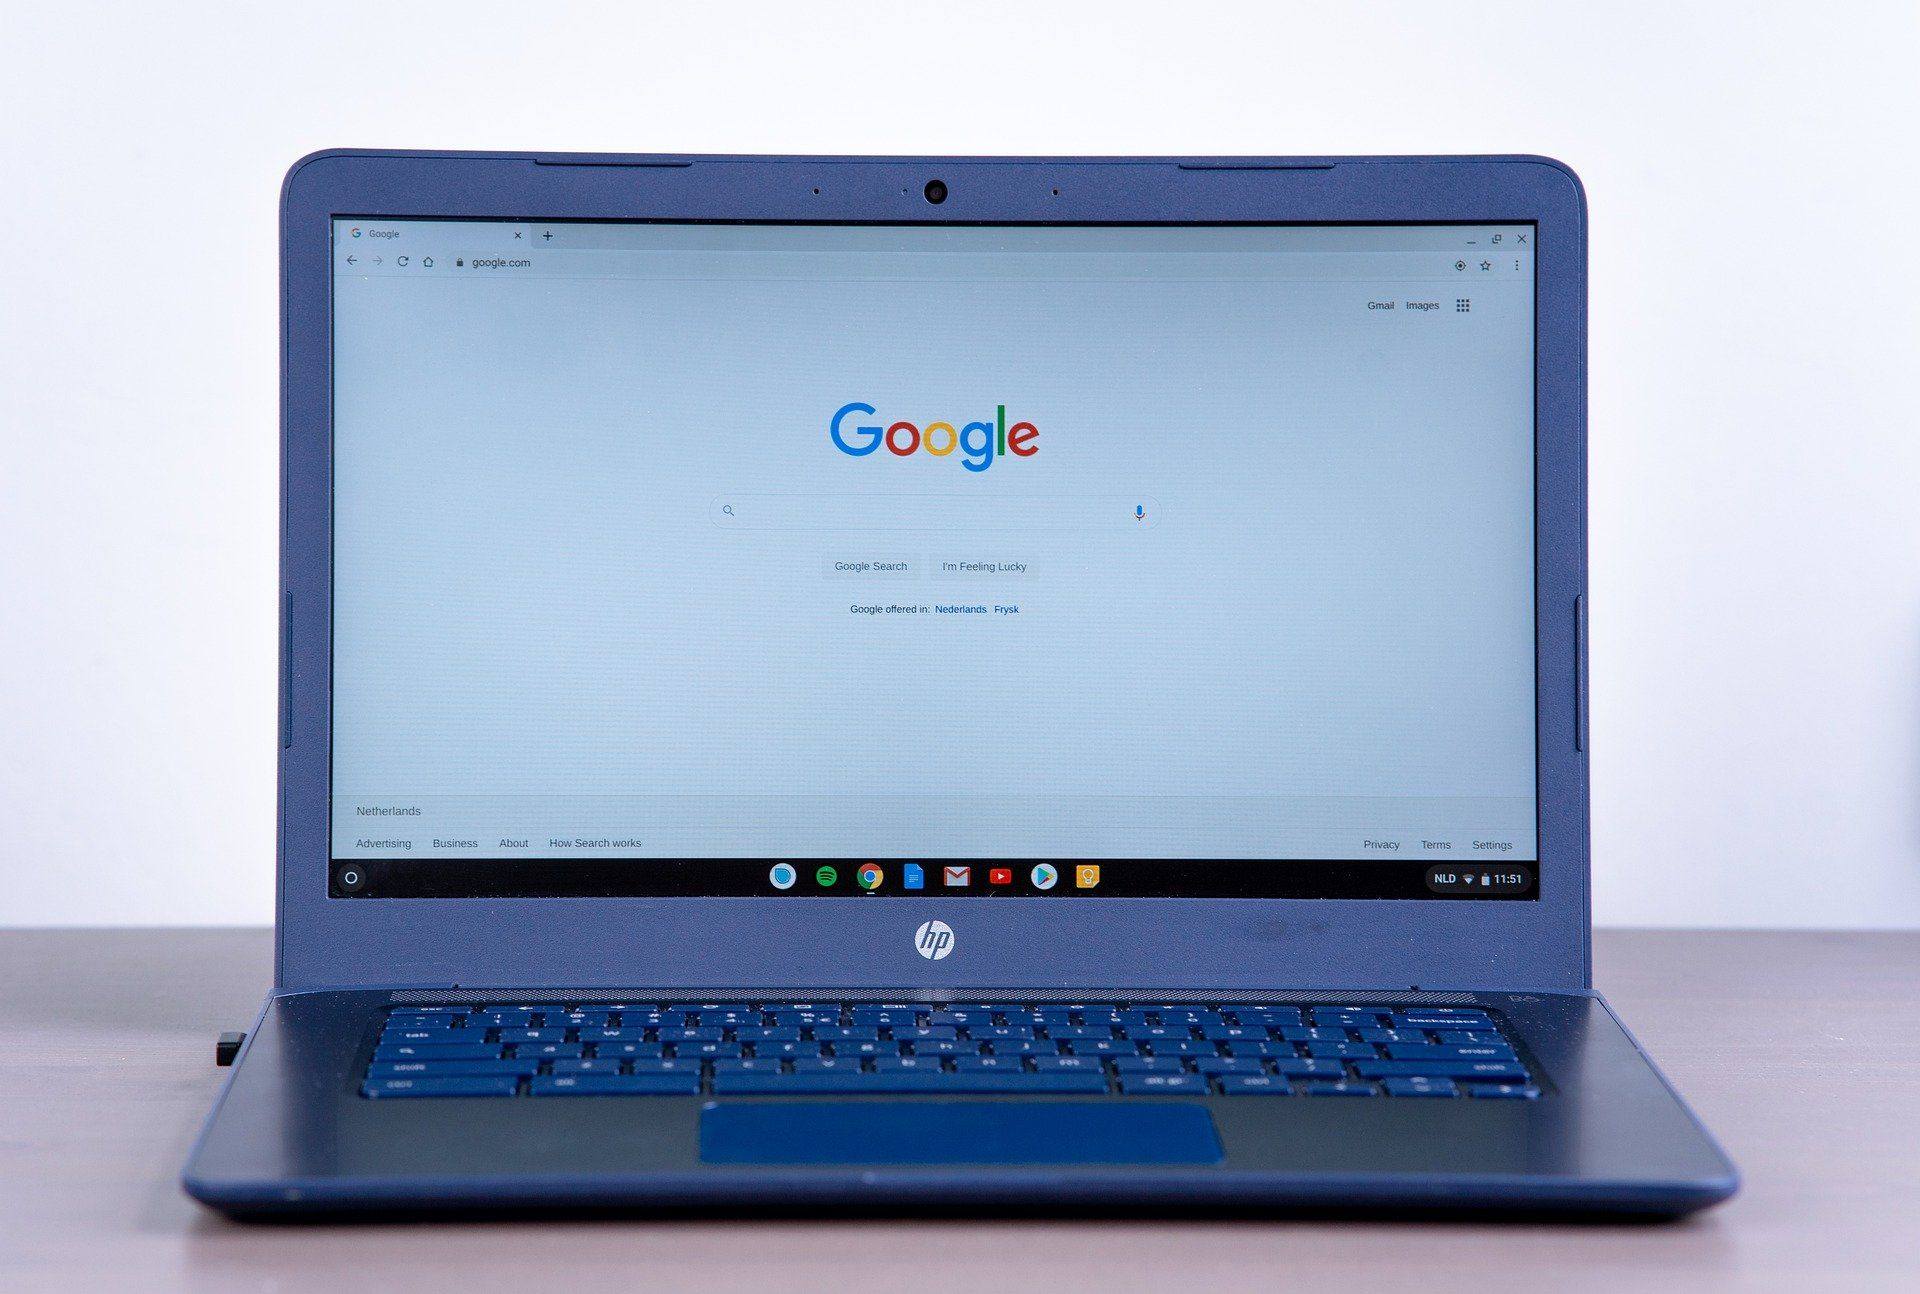 Laptop vs. Chromebook: What's the difference and which is best in 2020